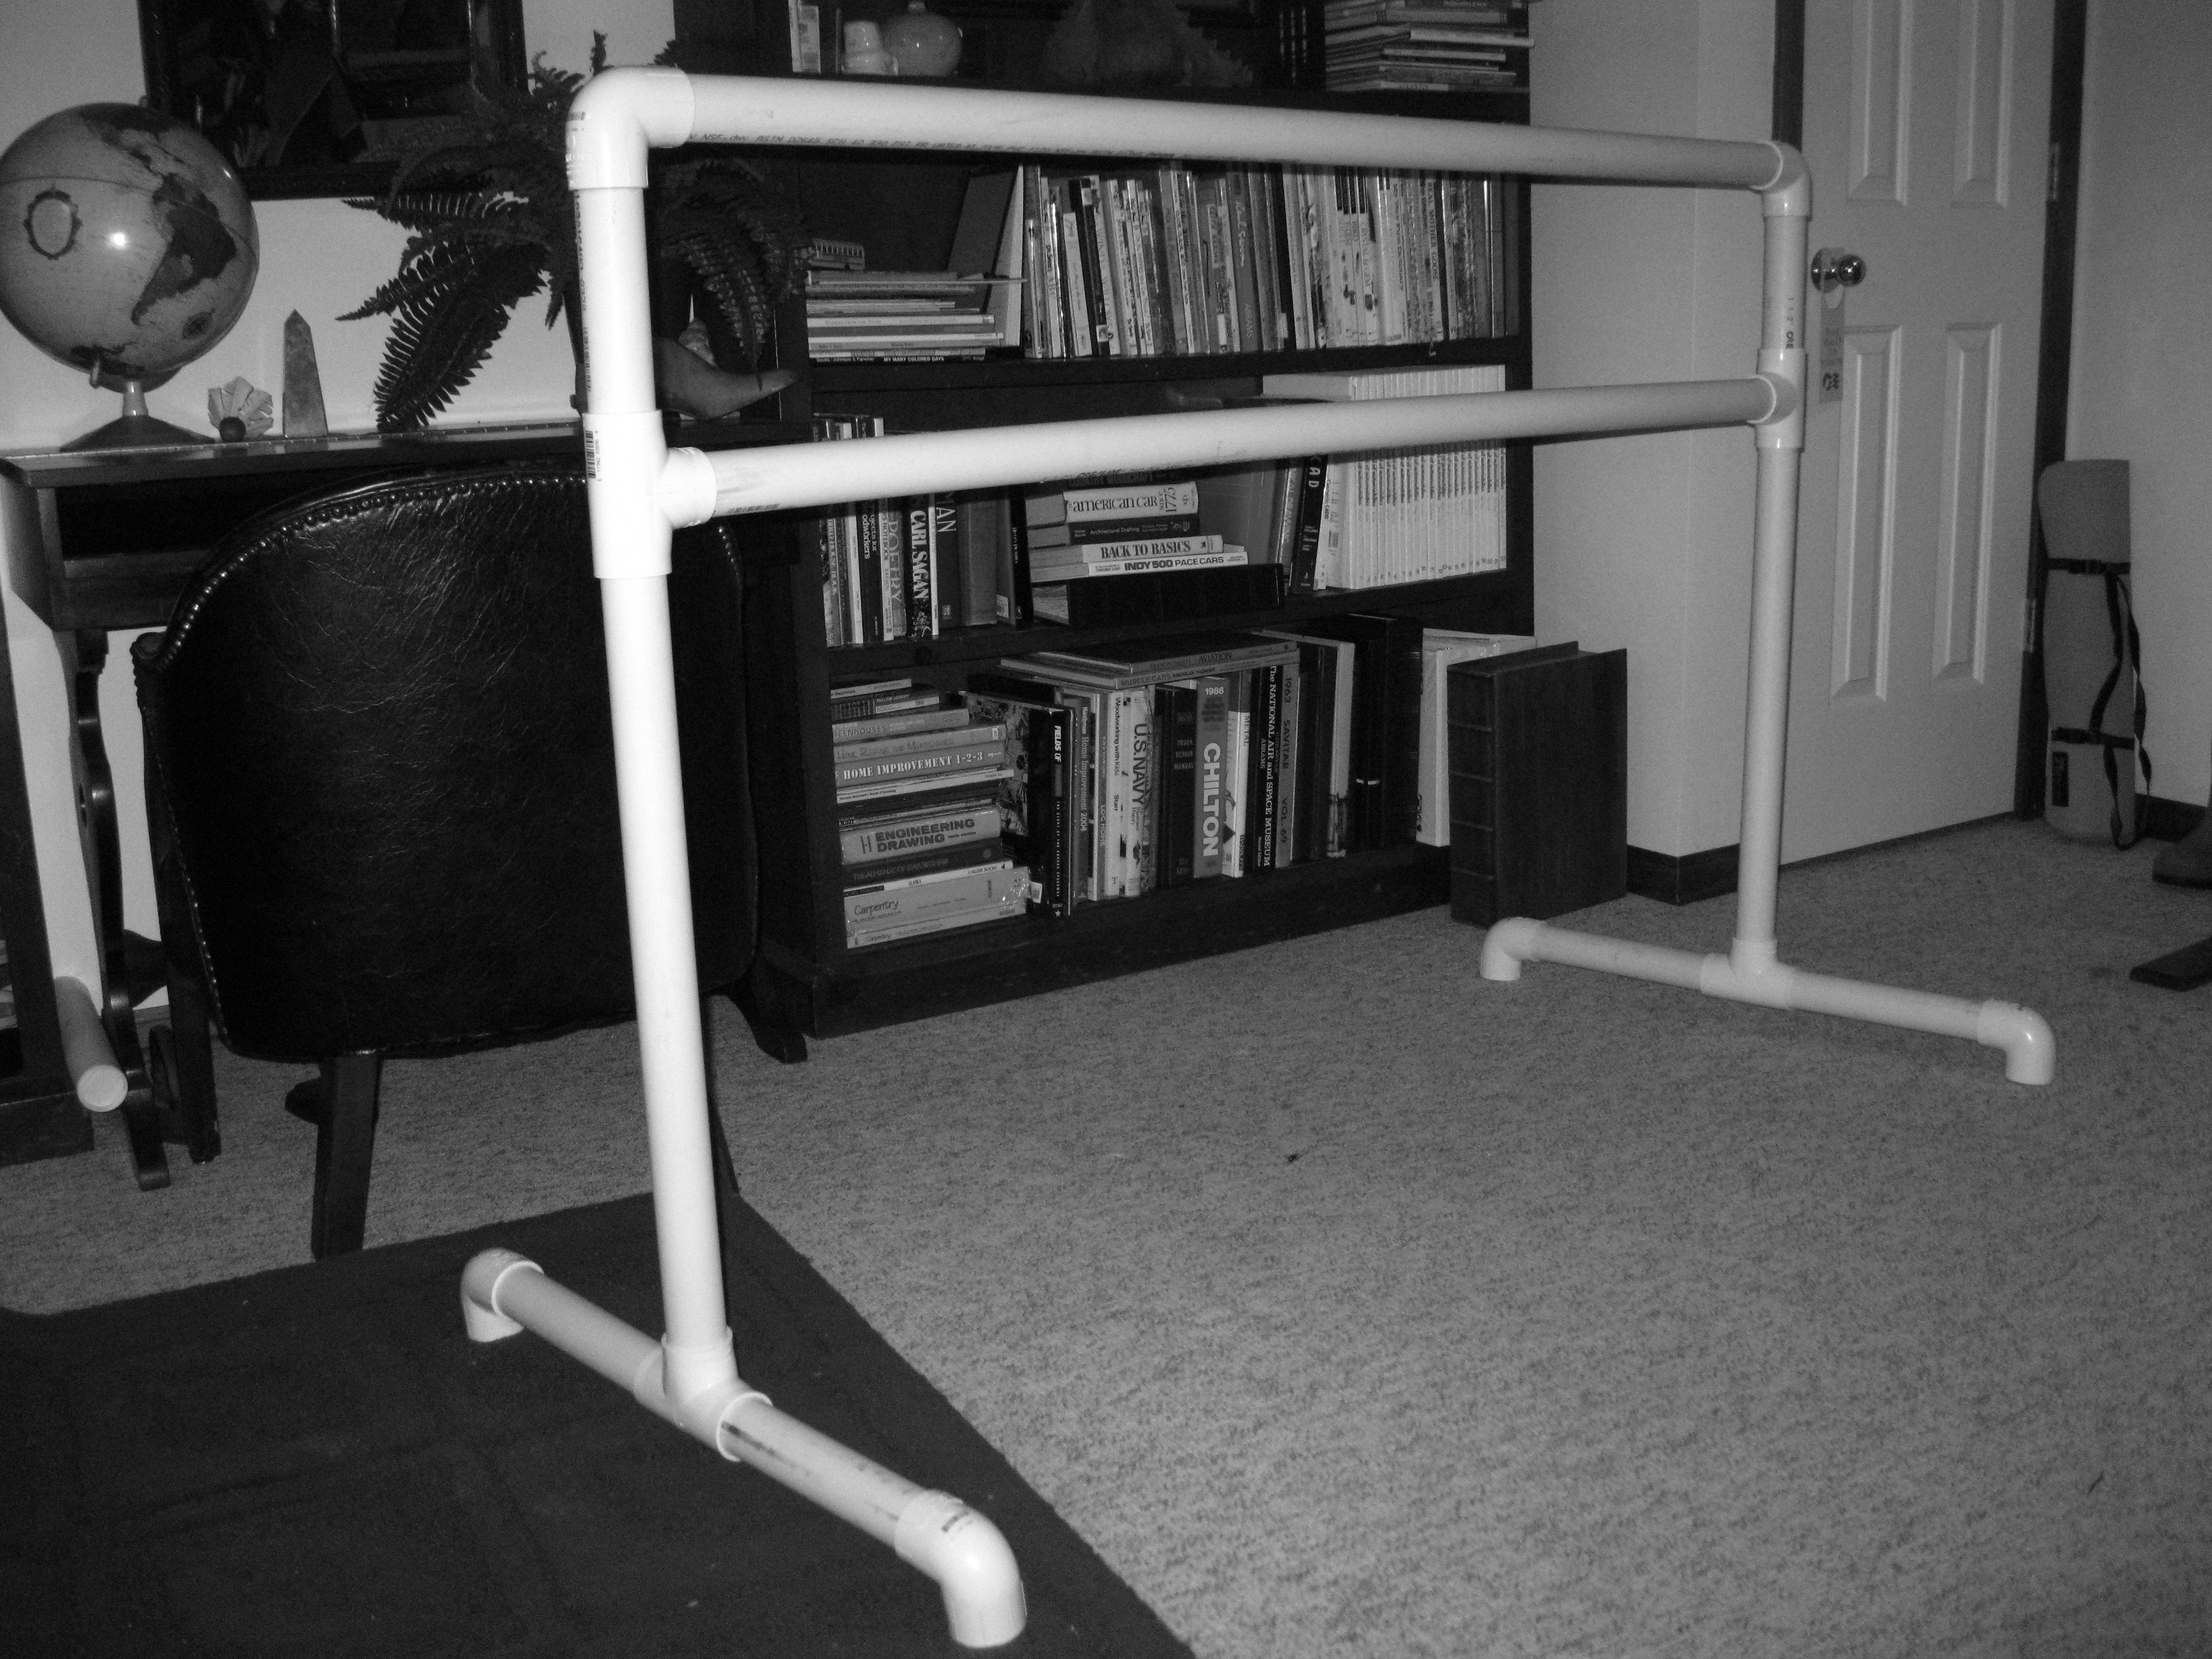 //leotardsandthebunsinthem.files.wordpress.com/2011/09/barre.jpg Making this with a single bar for GG will work as a practice bar for gymnastics. & http://leotardsandthebunsinthem.files.wordpress.com/2011/09/barre ...